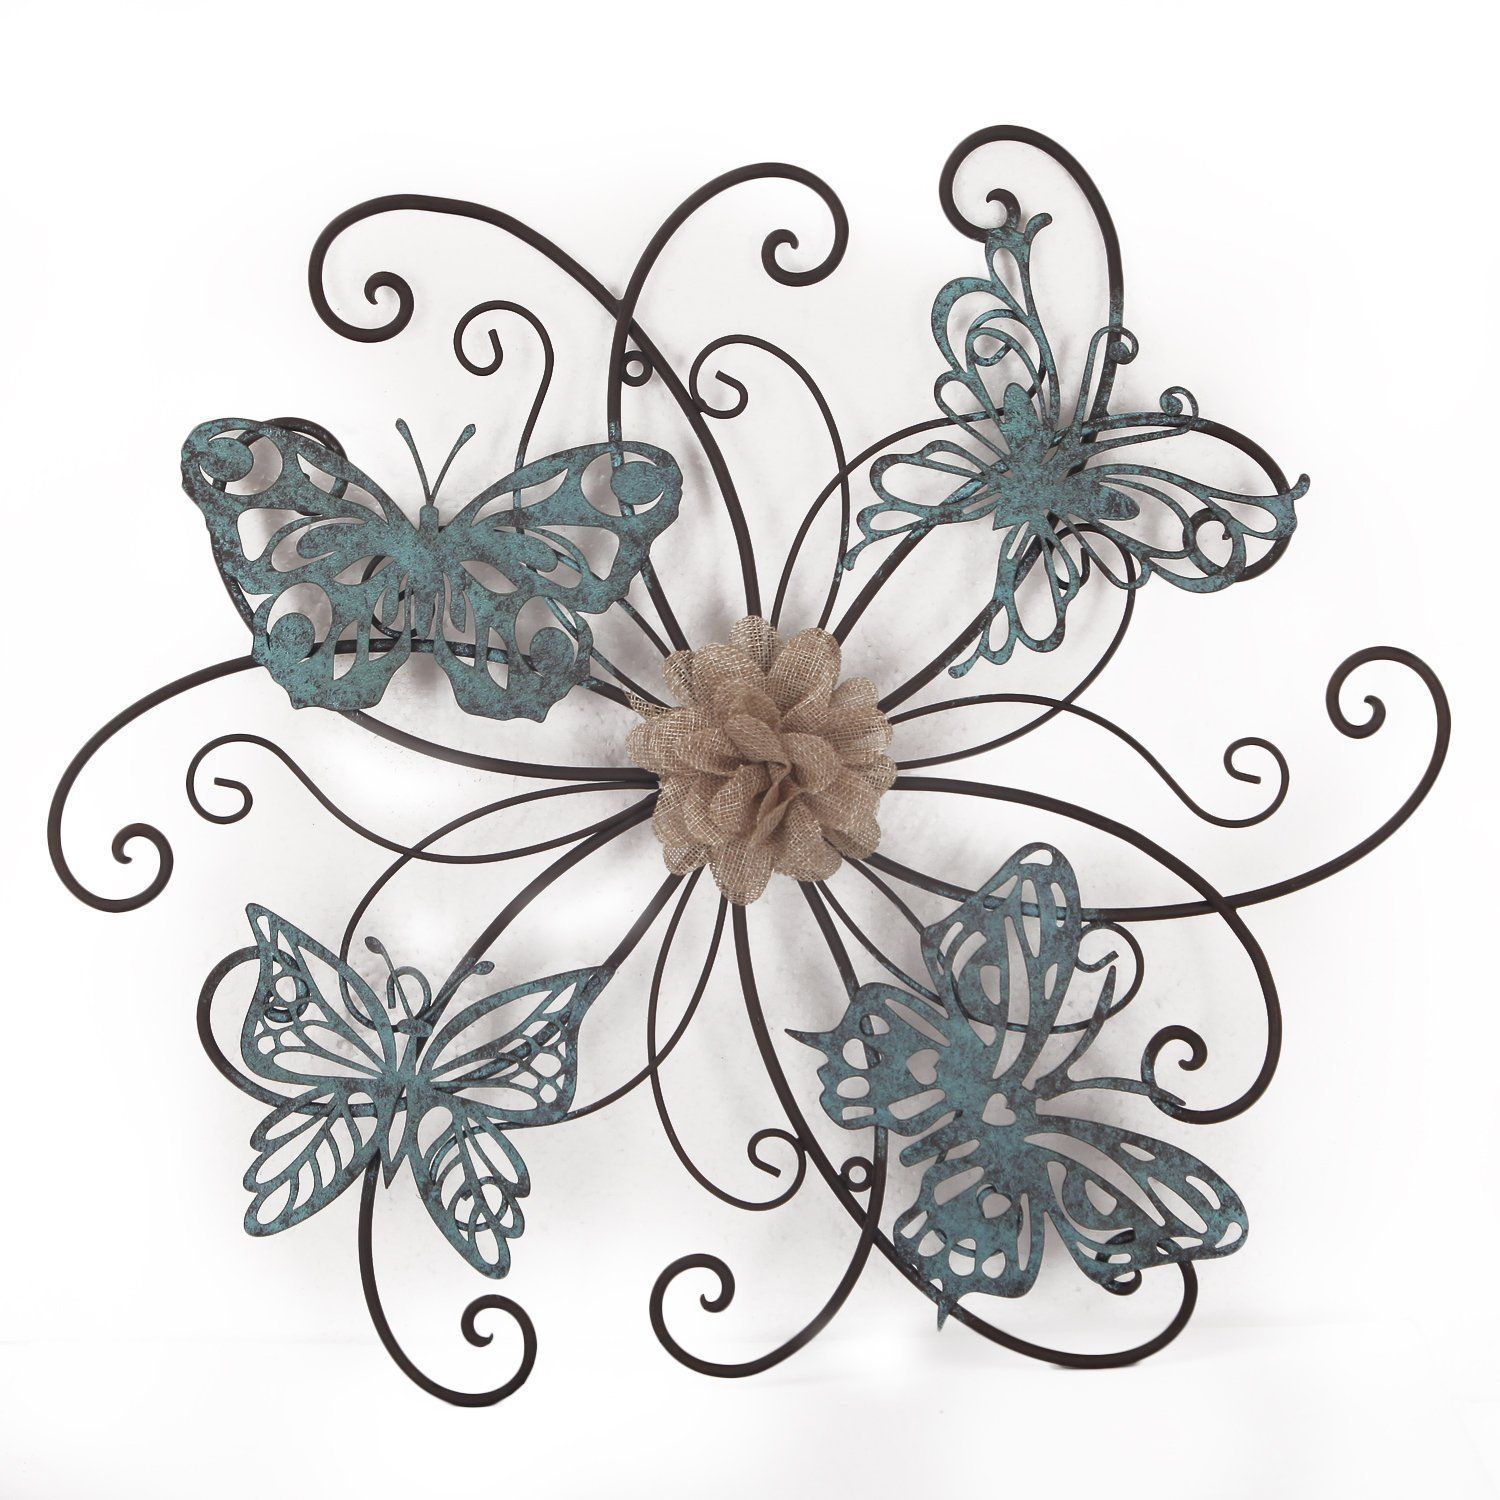 Flower And Butterfly Urban Design Metal Wall Decor intended for Best and Newest Adeco Flower And Butterfly Urban Design Metal (Grey) Wall Decor For